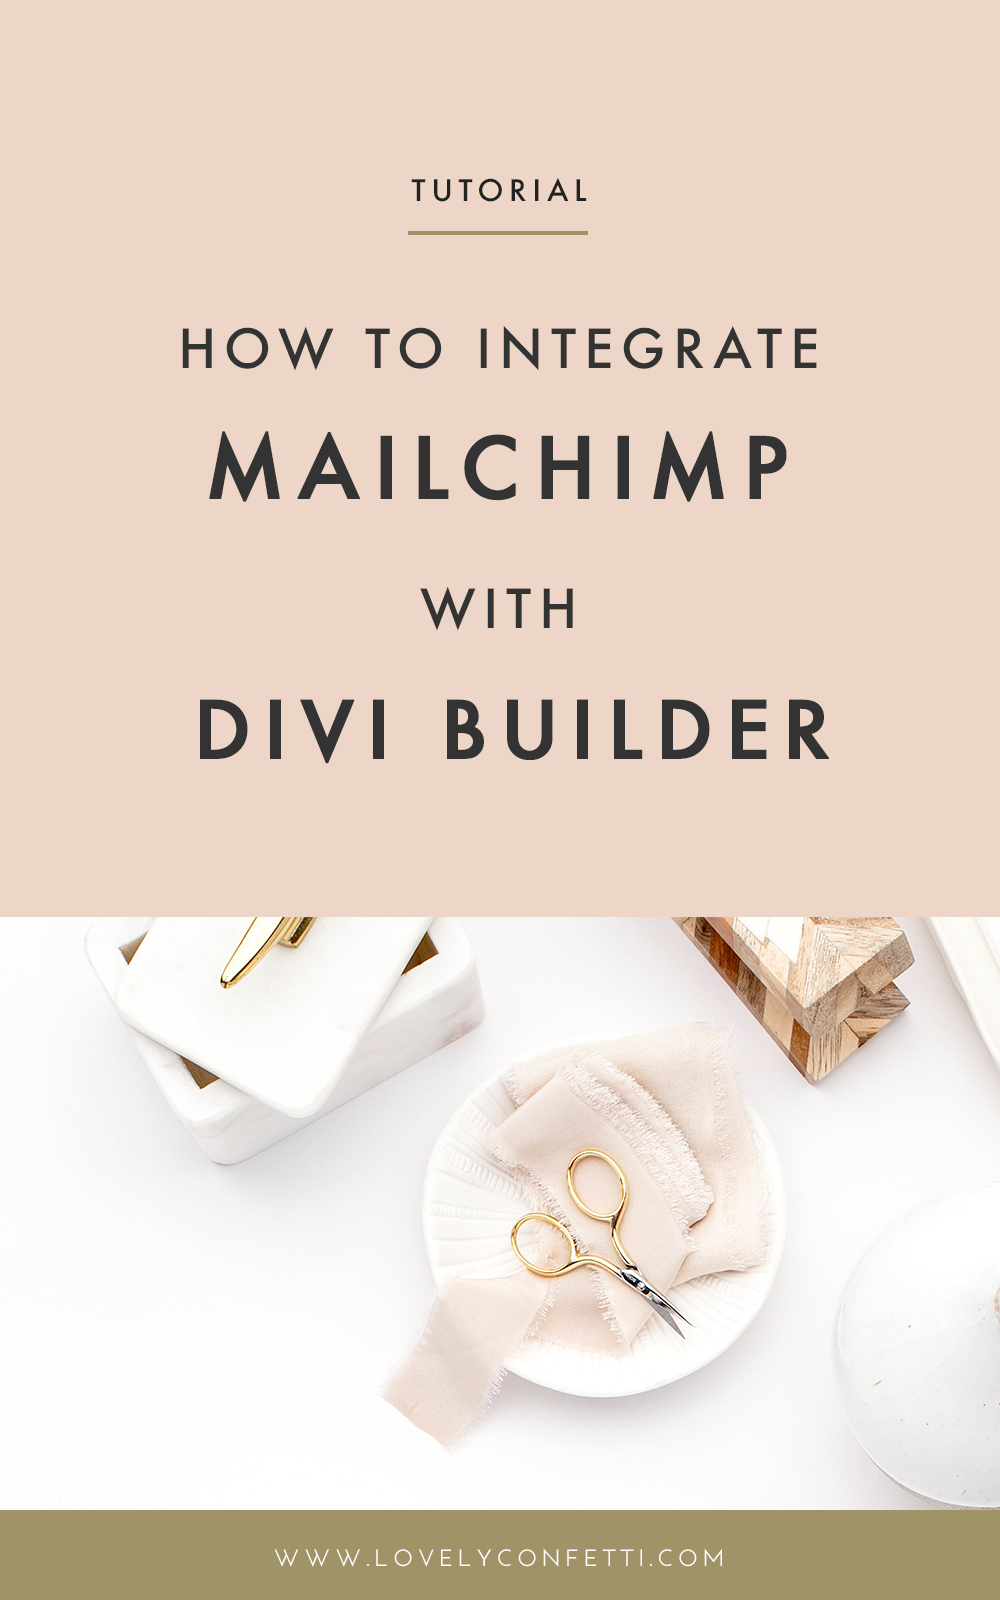 How to integrate MailChimp with Divi Builder